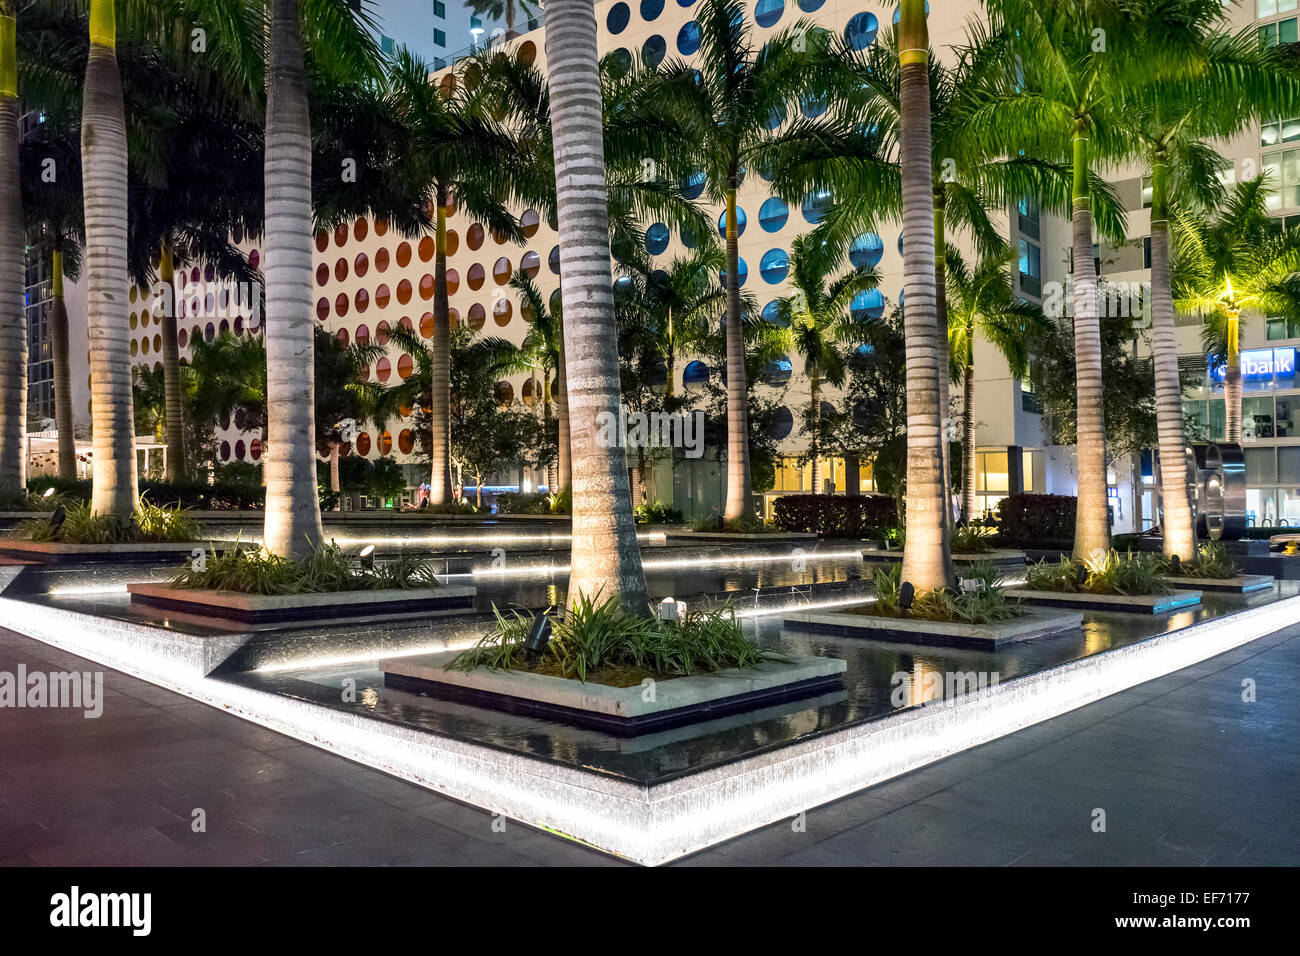 downtown-miami-brickell-bank-plaza-with-